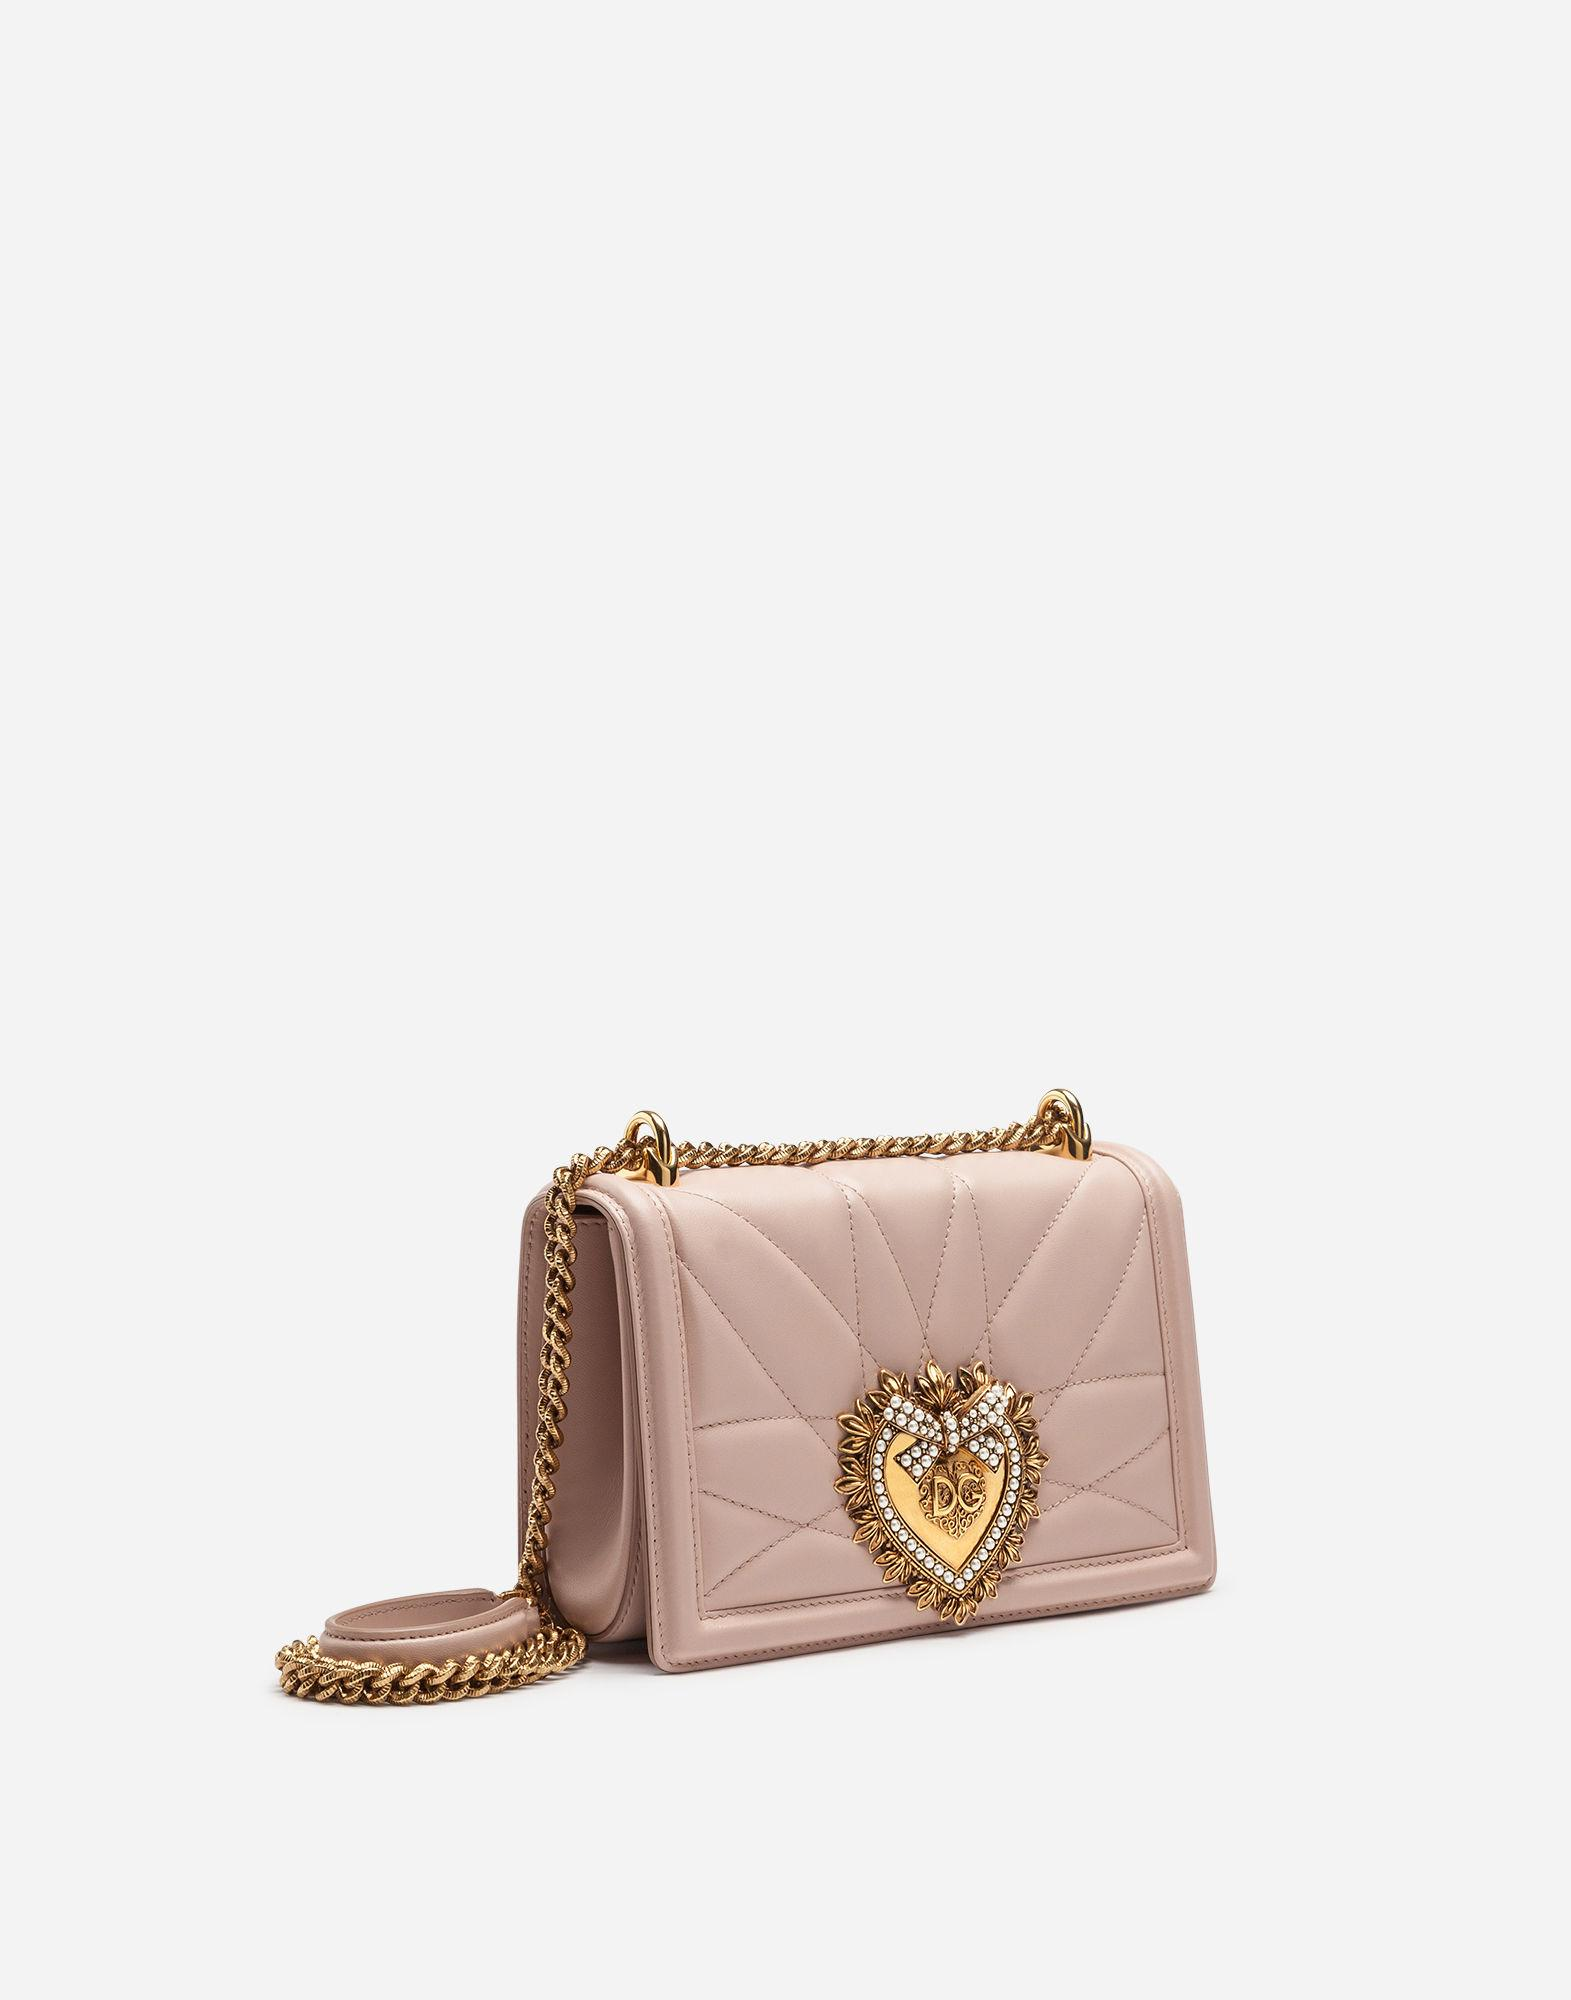 f6d16b1ff0d1 Lyst - Dolce   Gabbana Large Devotion Bag In Quilted Nappa Leather in Pink